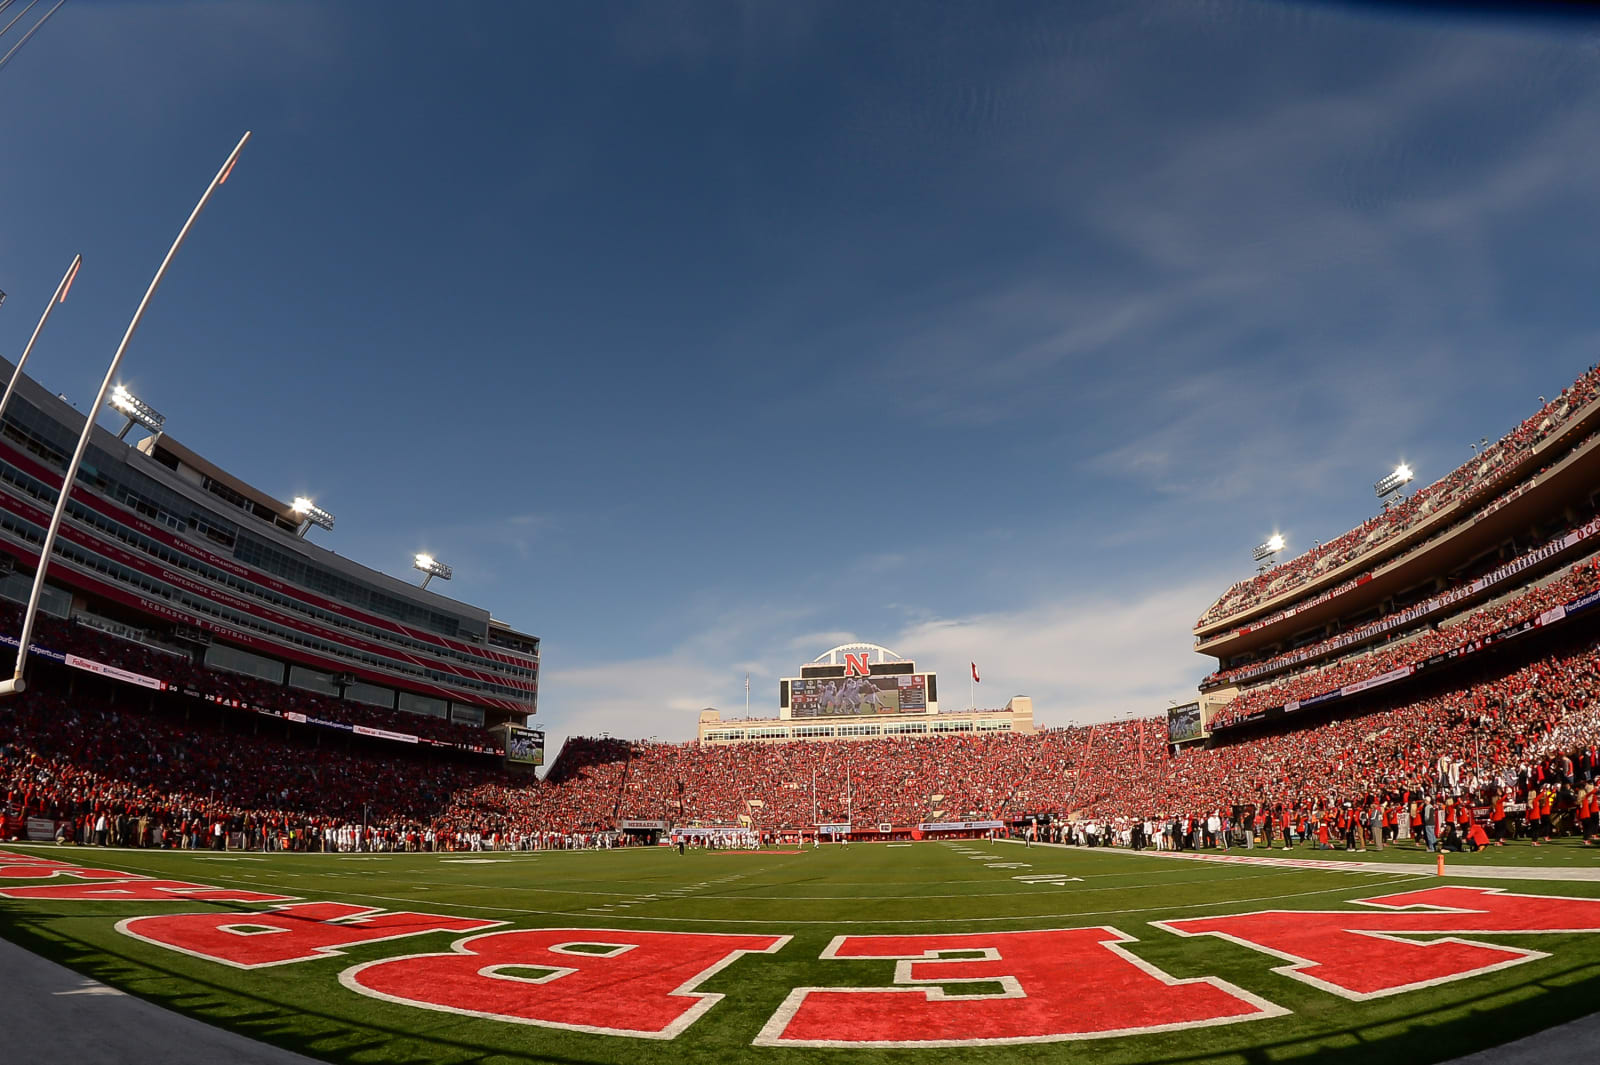 LINCOLN, NE - NOVEMBER 16: General view of the stadium during the game between the Nebraska Cornhuskers and the Wisconsin Badgers at Memorial Stadium on November 16, 2019 in Lincoln, Nebraska. (Photo by Steven Branscombe/Getty Images)